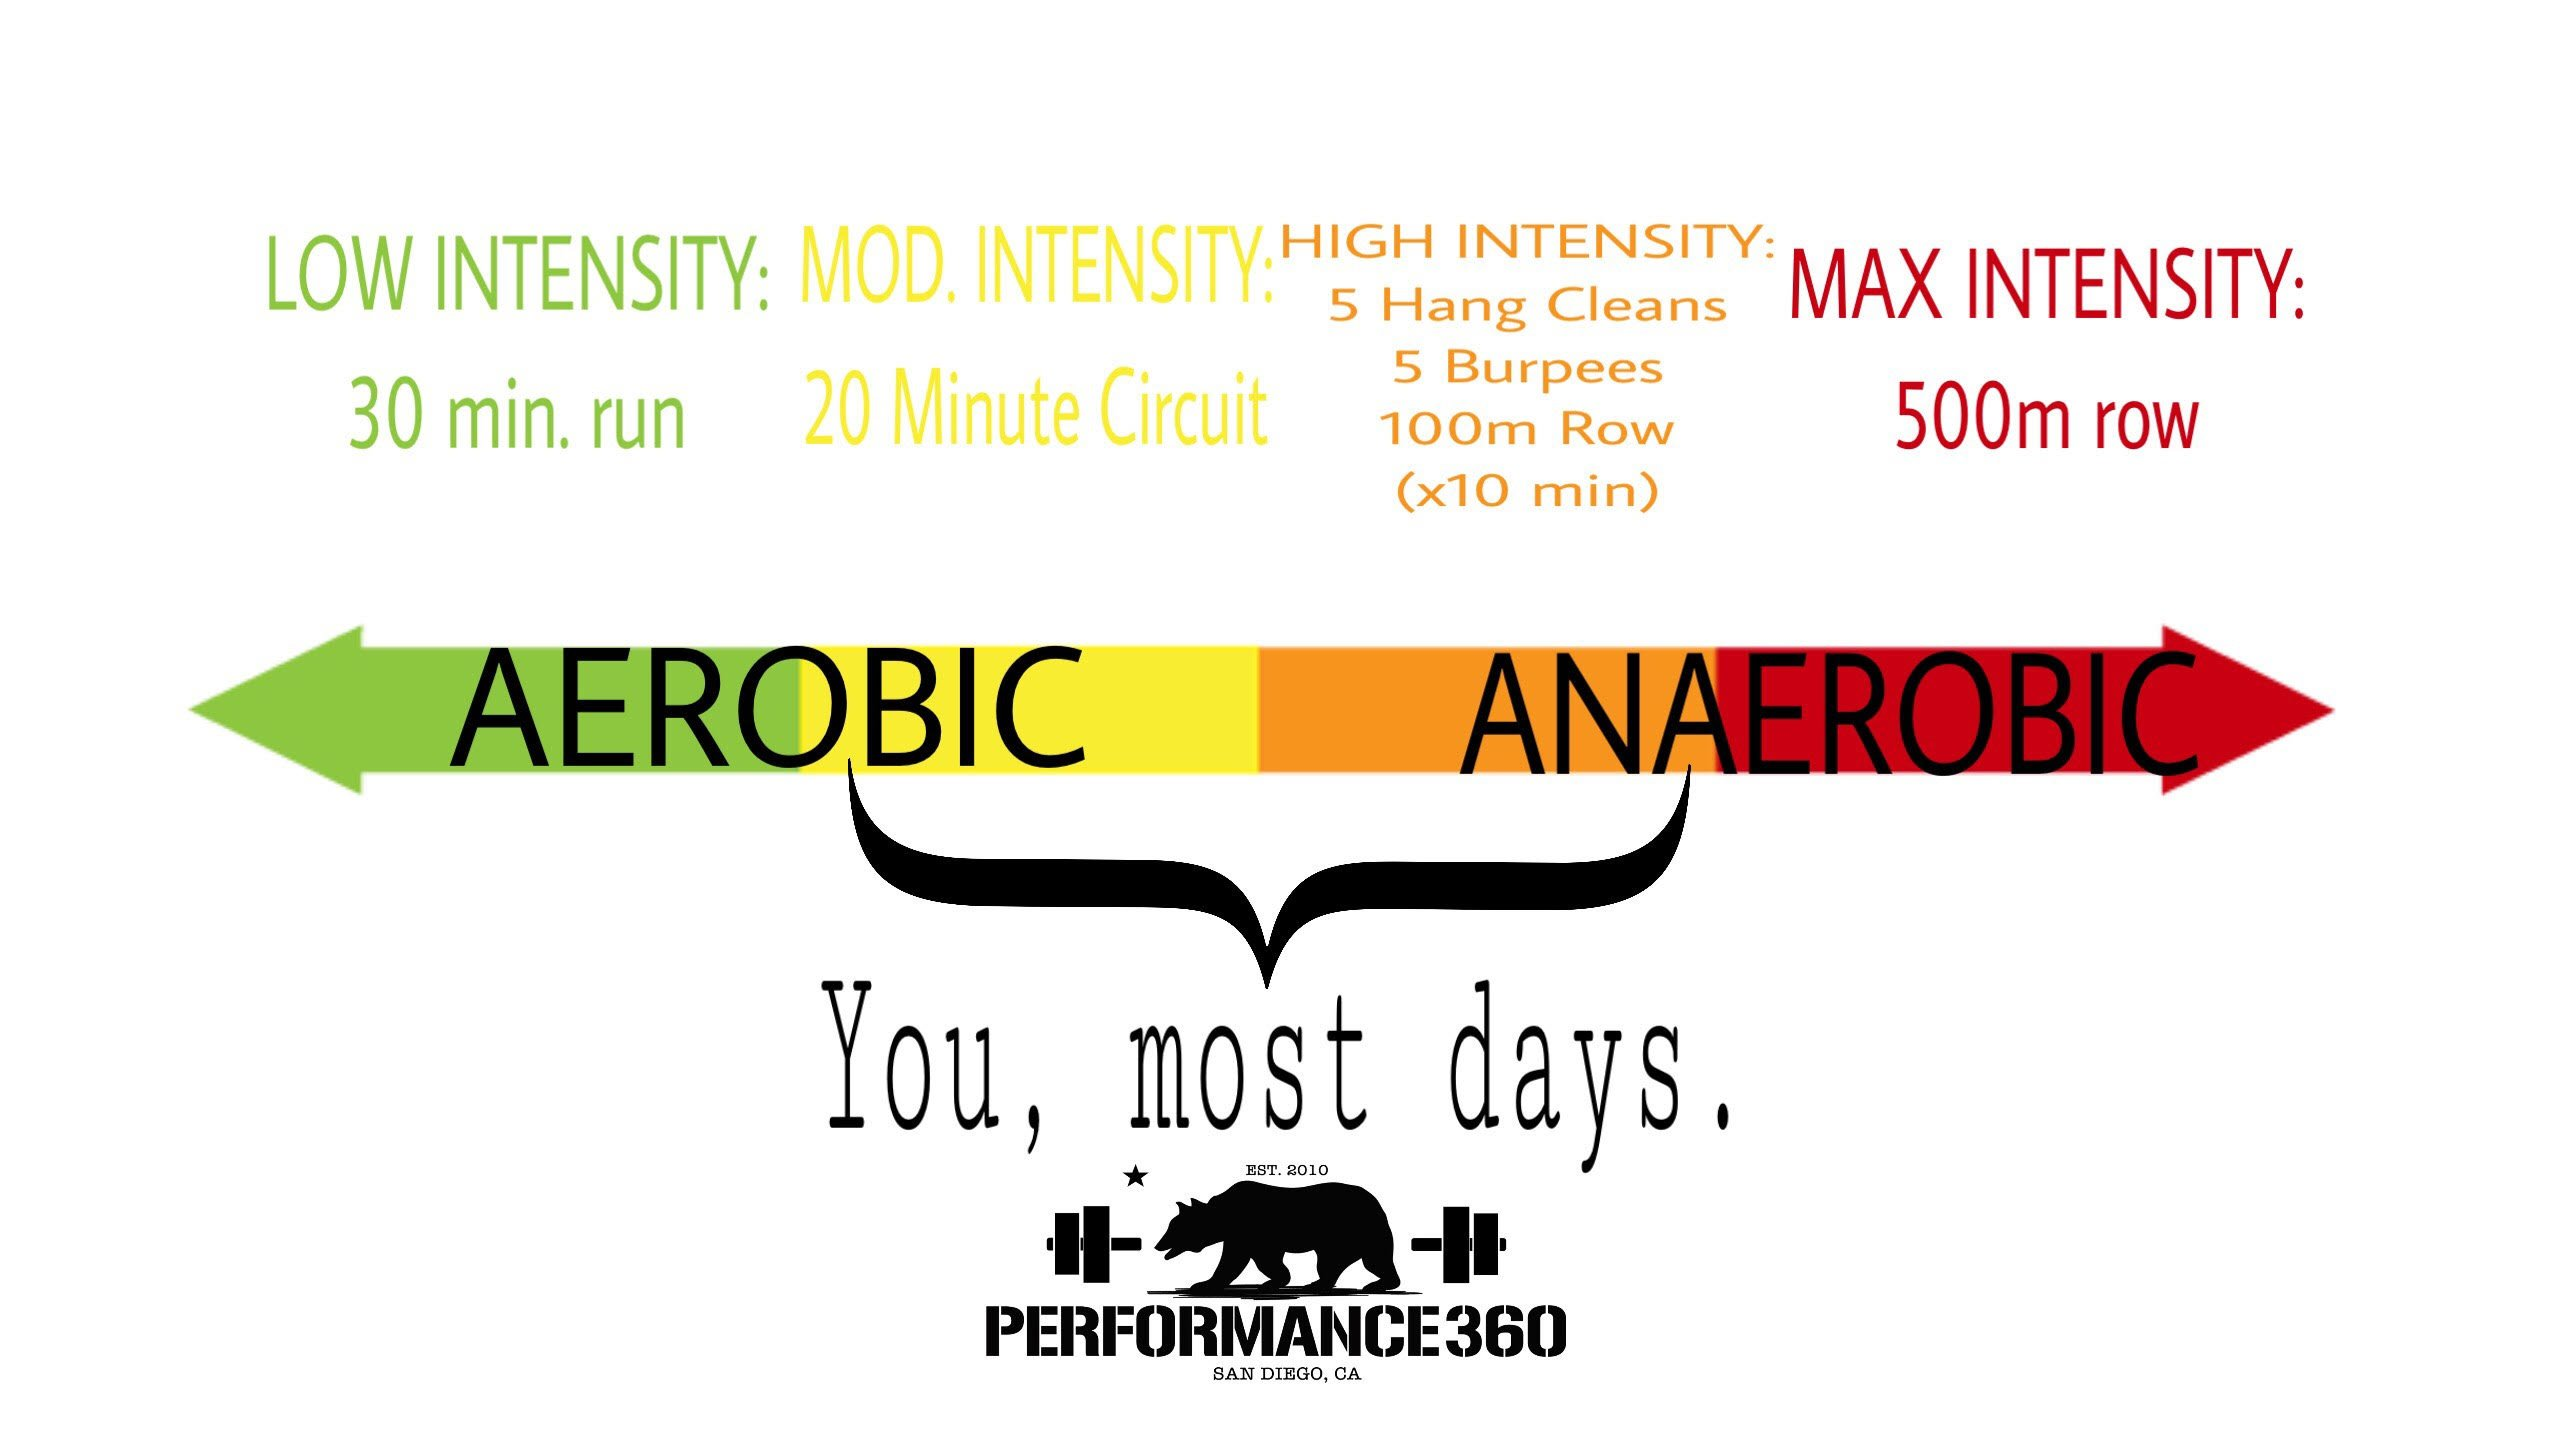 What is the difference between aerobic and anaerobic training?